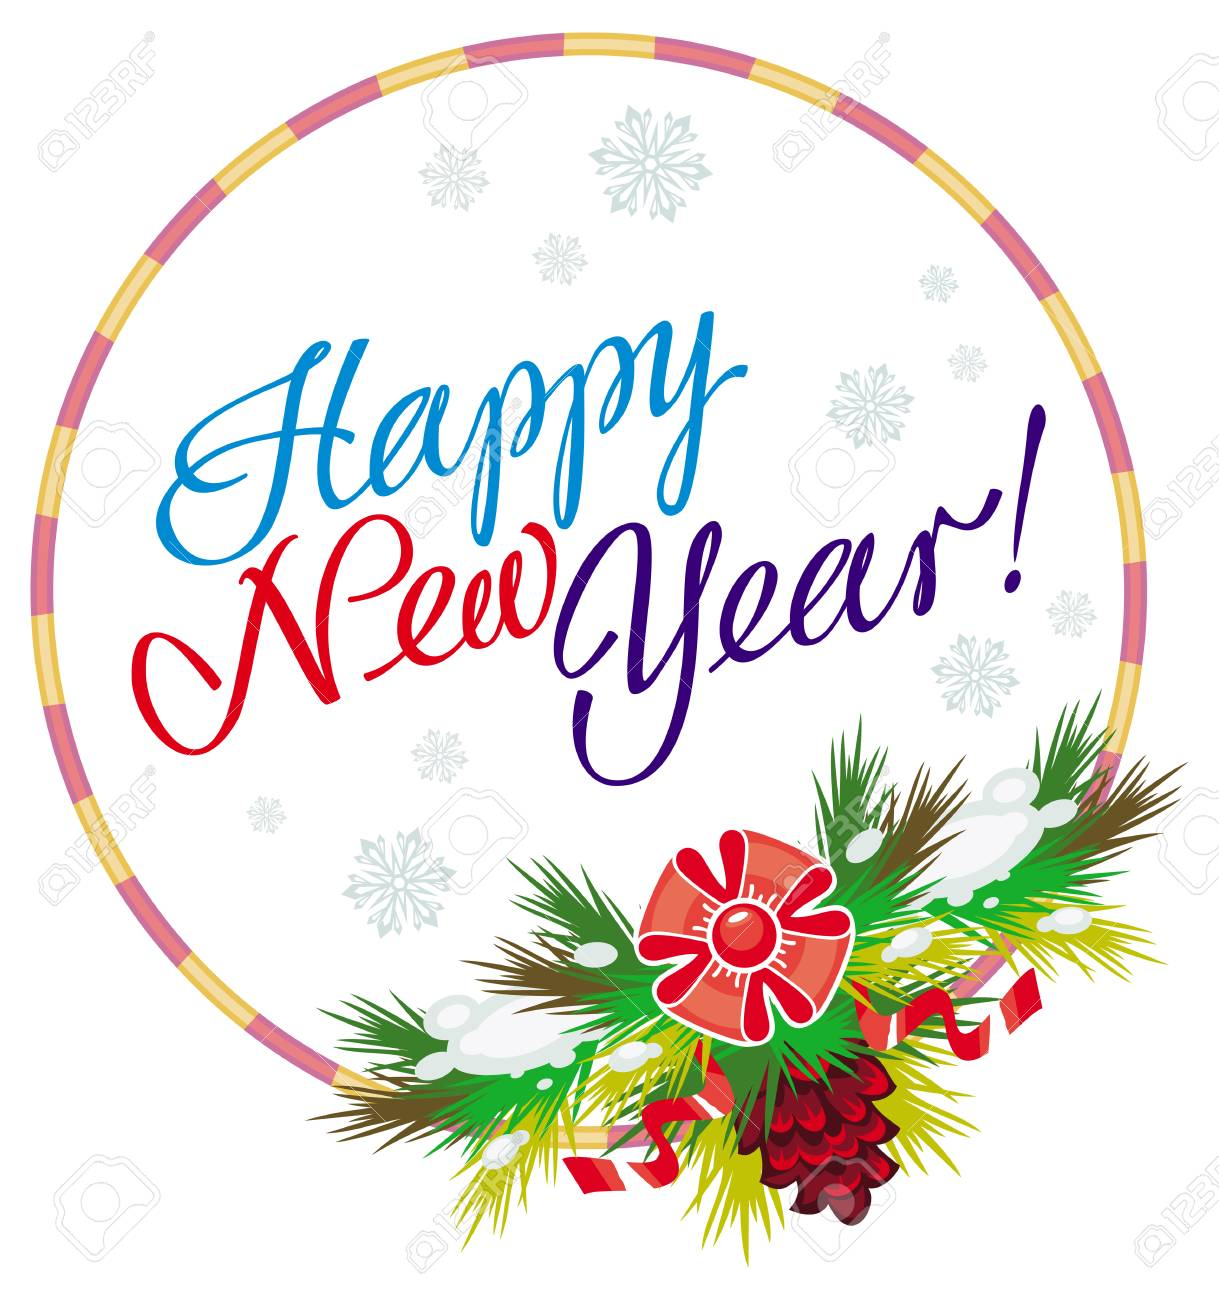 holiday round label with greeting text happy new year design rh 123rf com